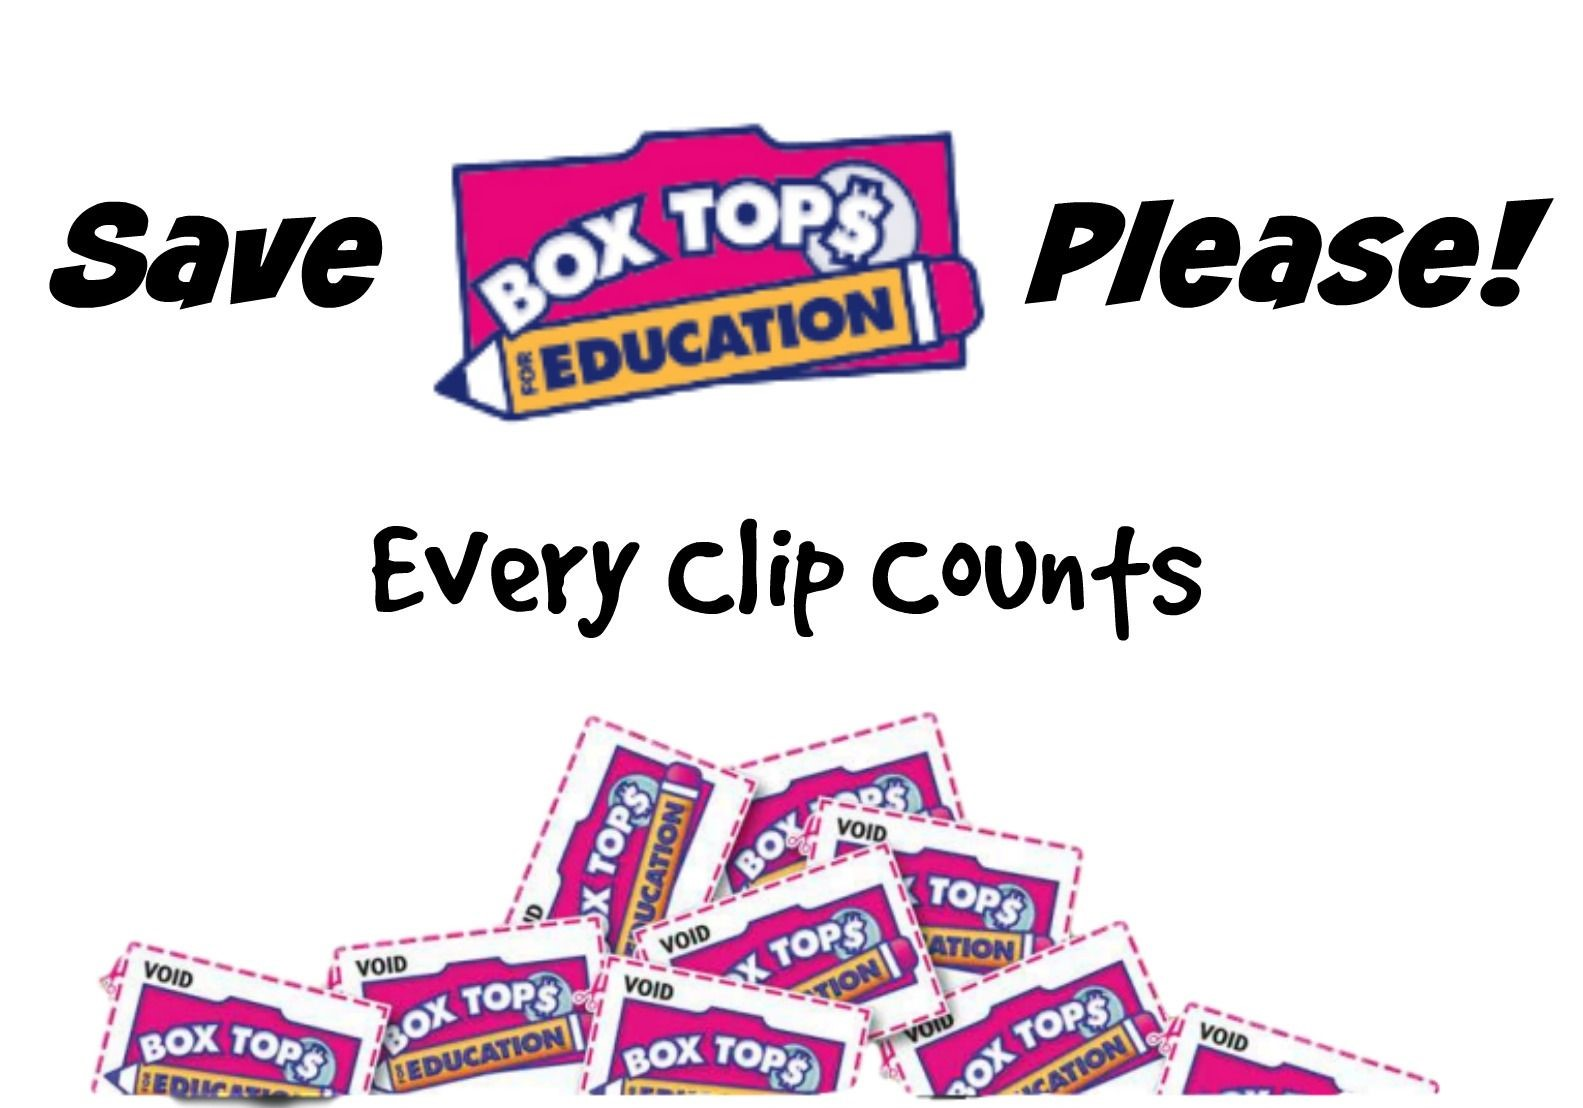 Bring in box tops